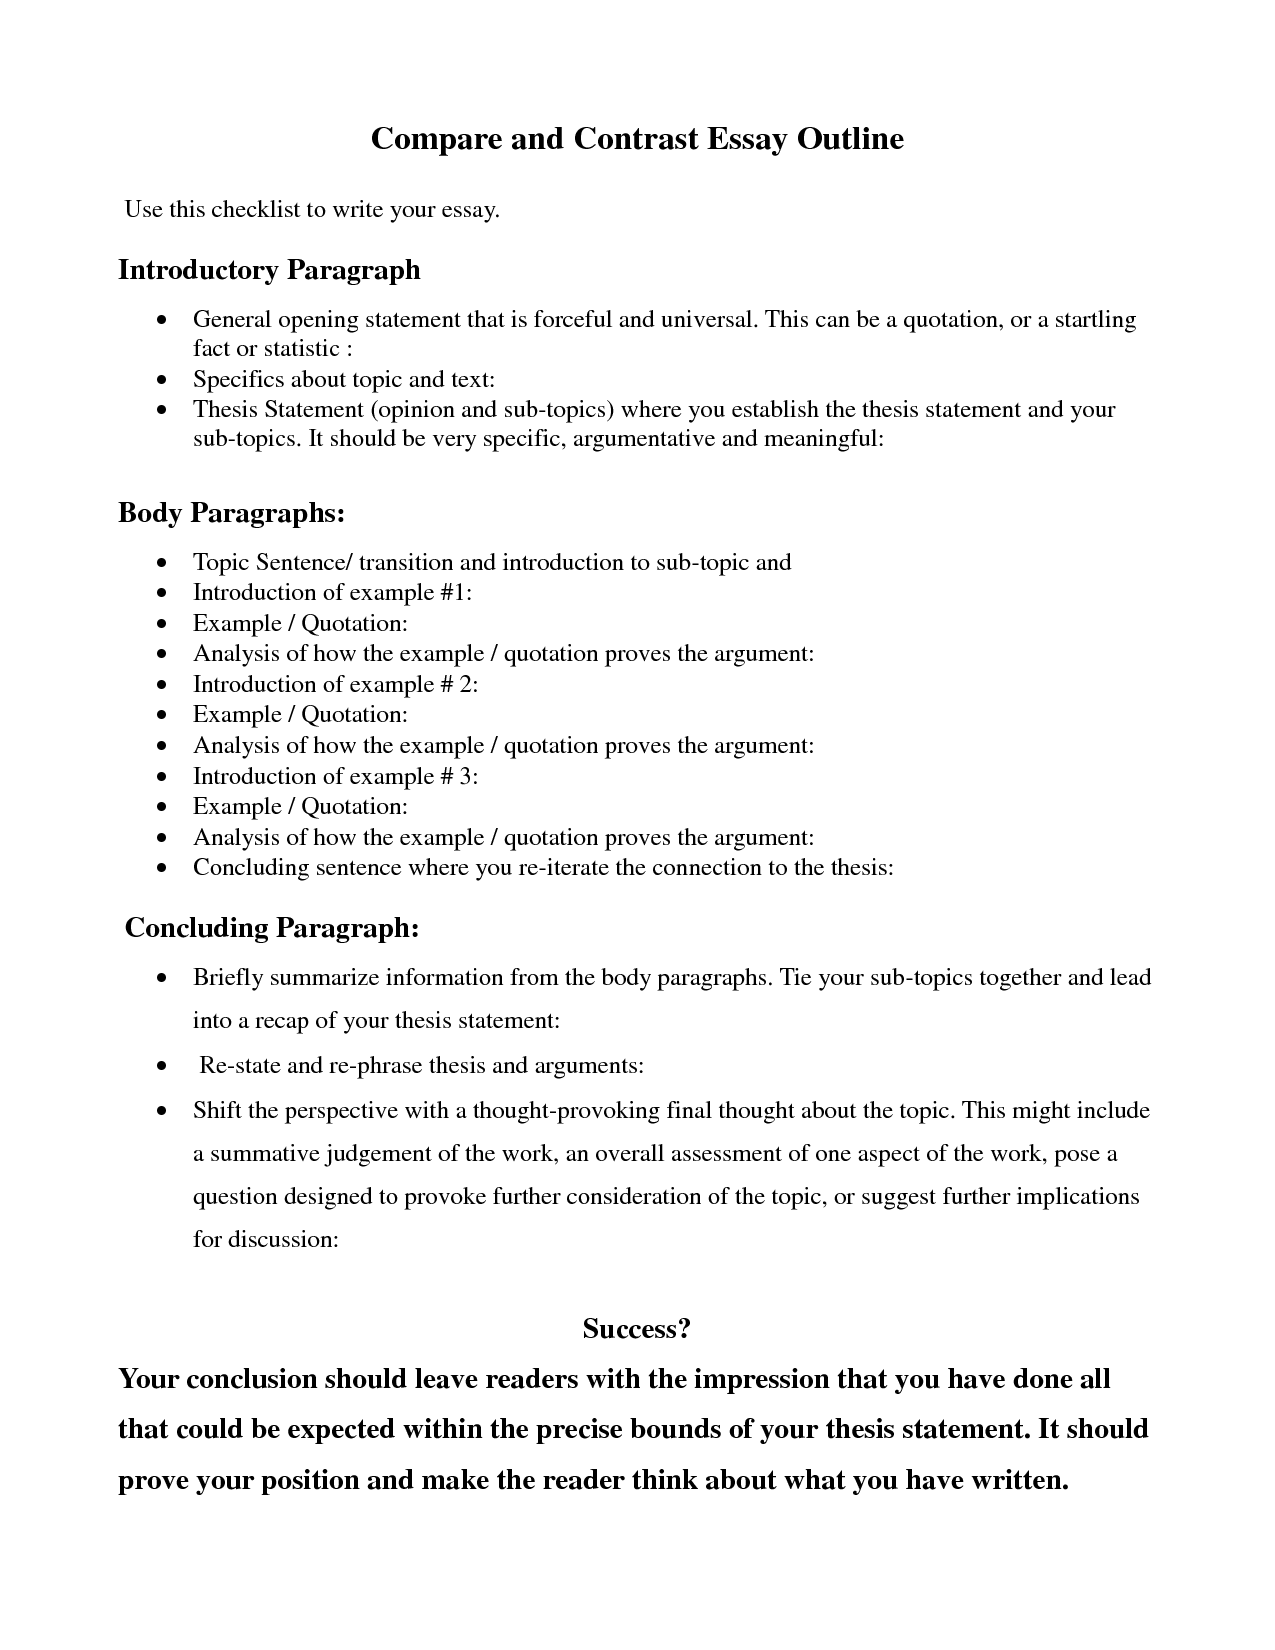 Comparison essay template